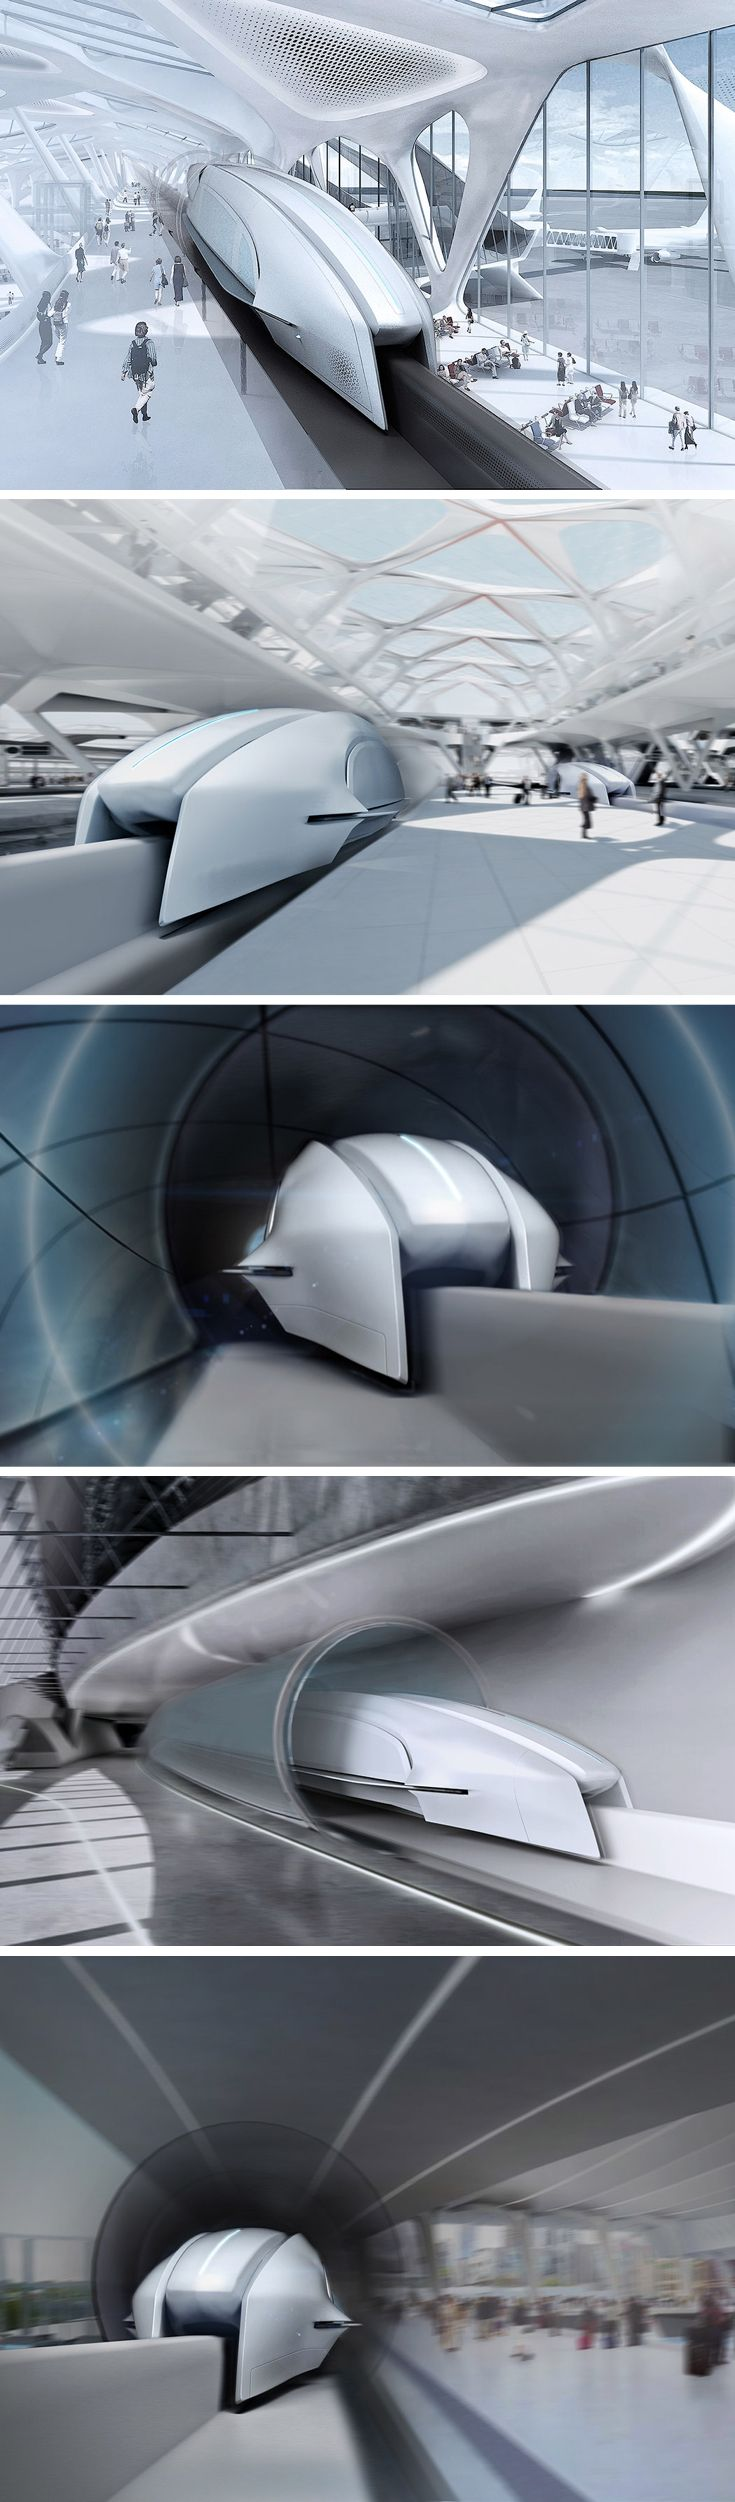 A challenger to Hyperloop, the air-cushioned Spacetrain aims to deliver passengers at a whopping 745 MPH! Set to test in 2019, the first prototype will use a hydrogen turbine. Made entirely of carbon fiber and CNT, the interurban shuttle will use graphene carbon breaks, graphene batteries, fuel cells, and other state of the art space technologies.